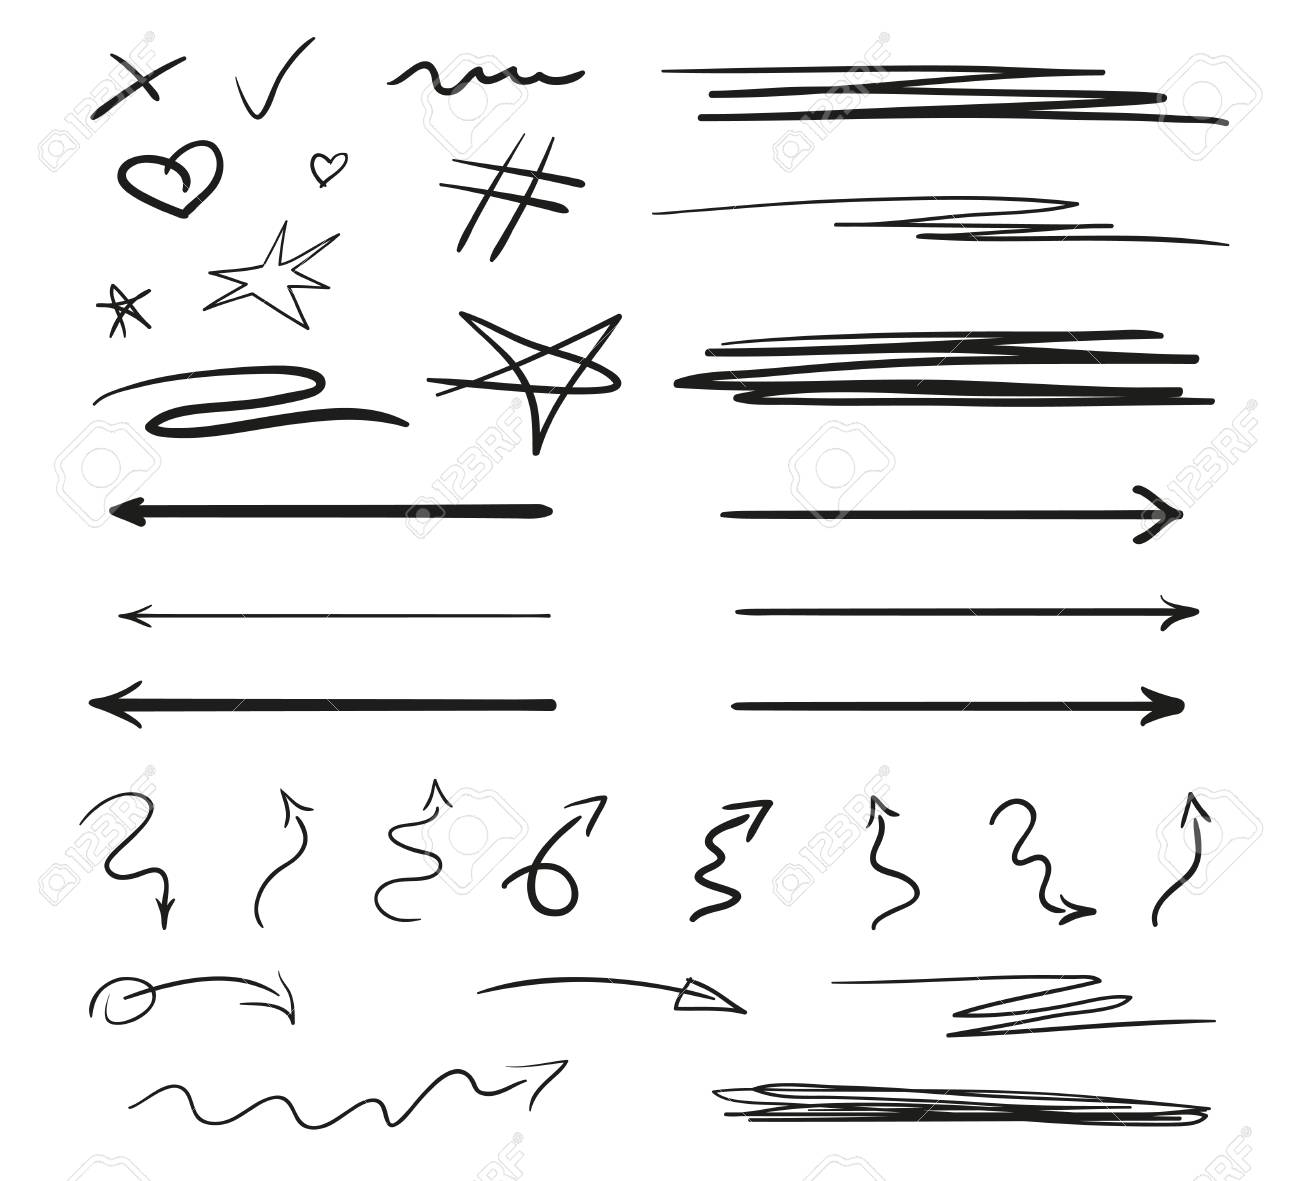 Infographic elements on isolation background. Backgrounds with array of lines on white. Intricate chaotic textures. Hand drawn tangled patterns. Black and white illustration - 125778897